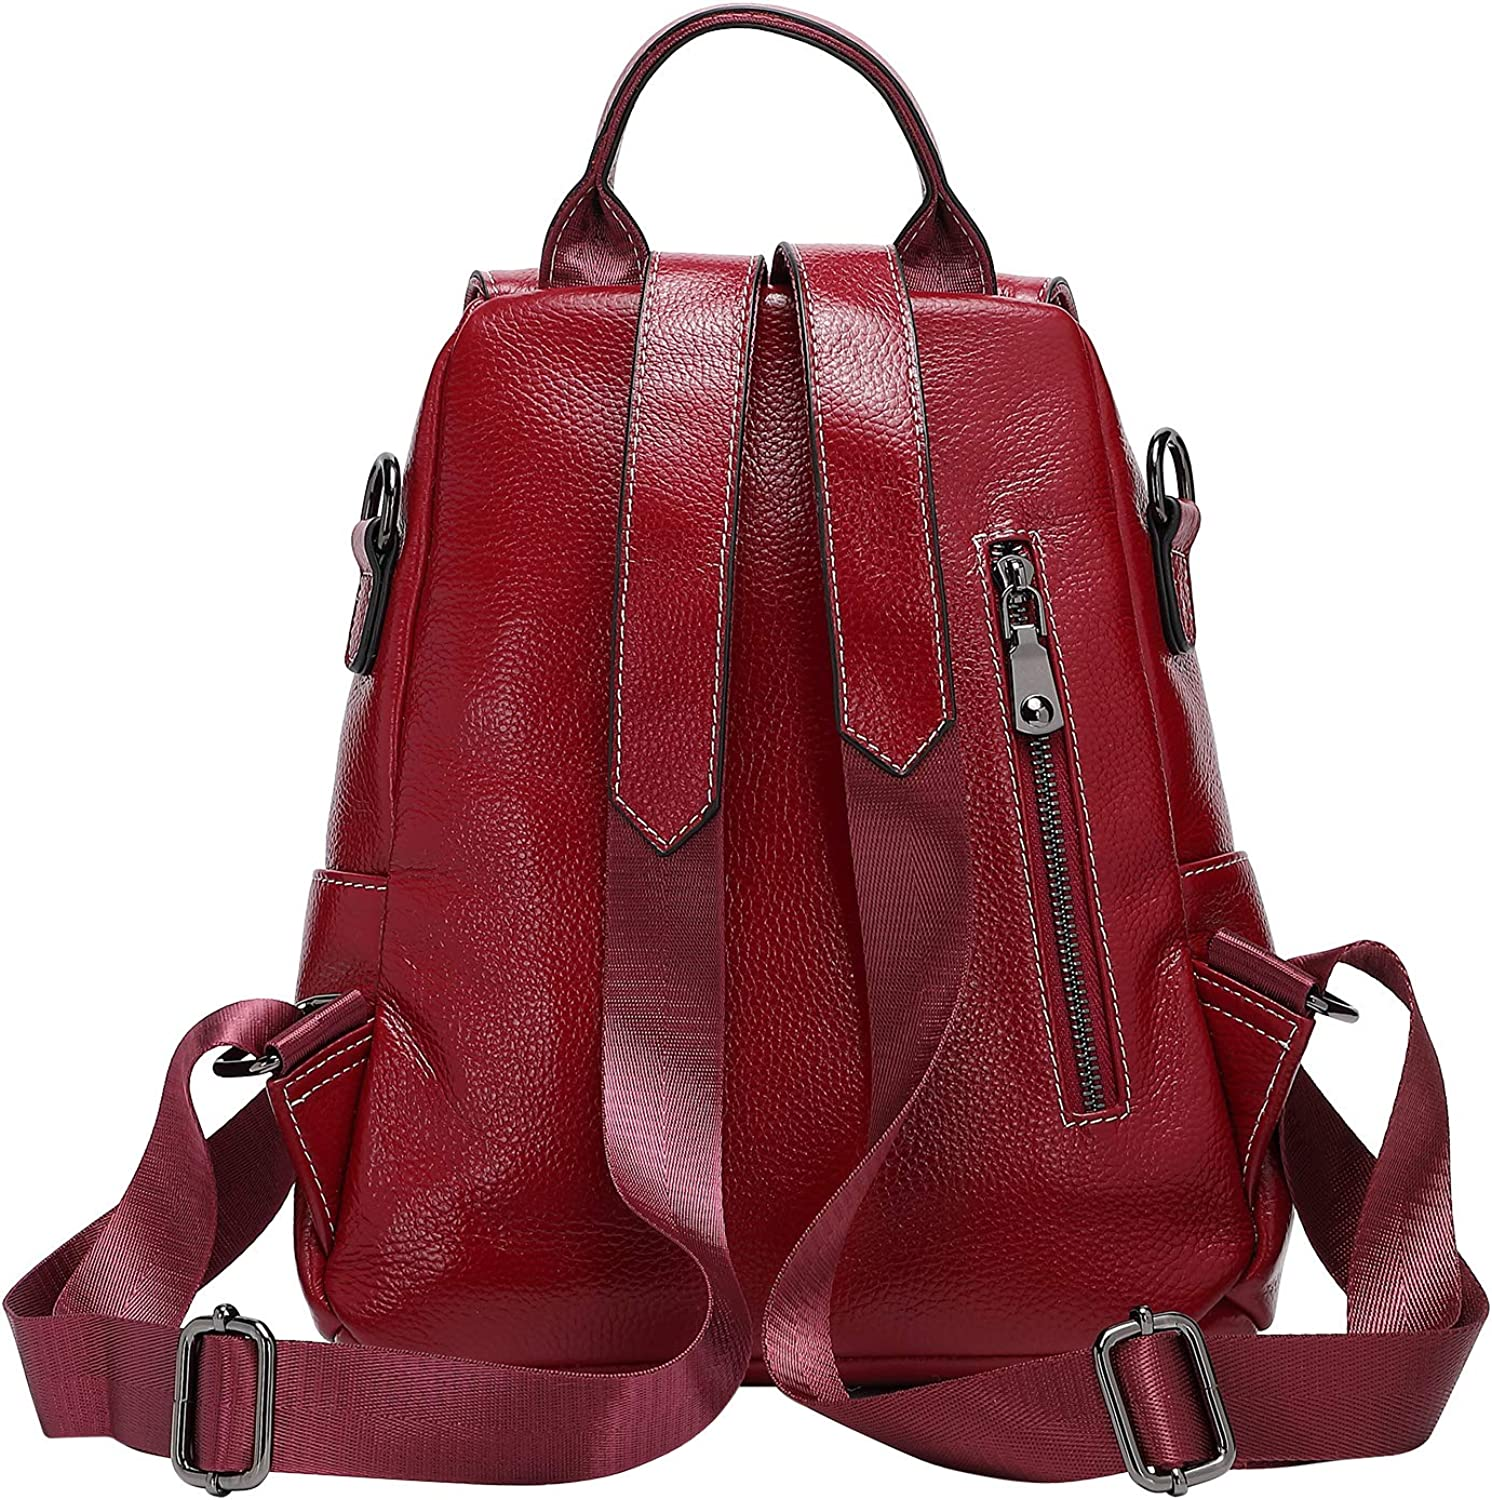 ALTOSY Fashion Real Leather Backpack Purse for Womens Versatile Casual Shoulder Bag